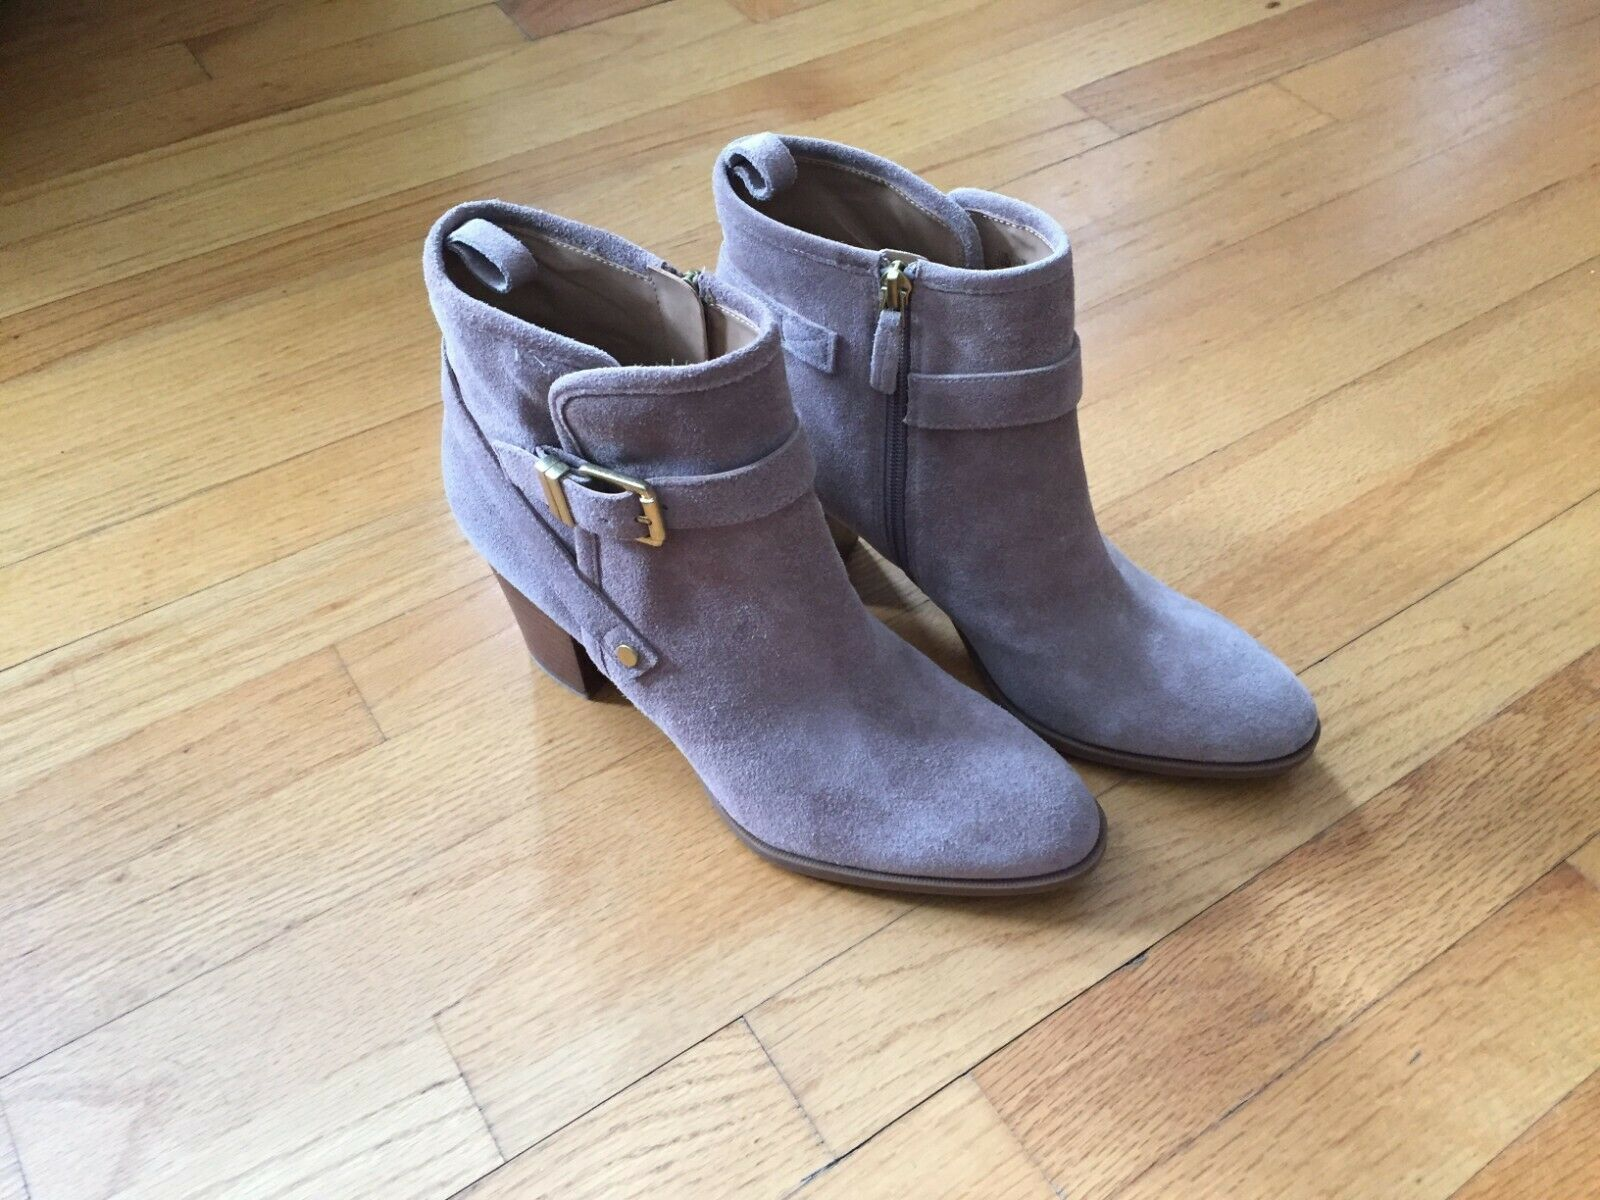 NEW Franco Sarto Tan Suede Ankle Fashion Zipper Boots Booties Ladies Size 10 us